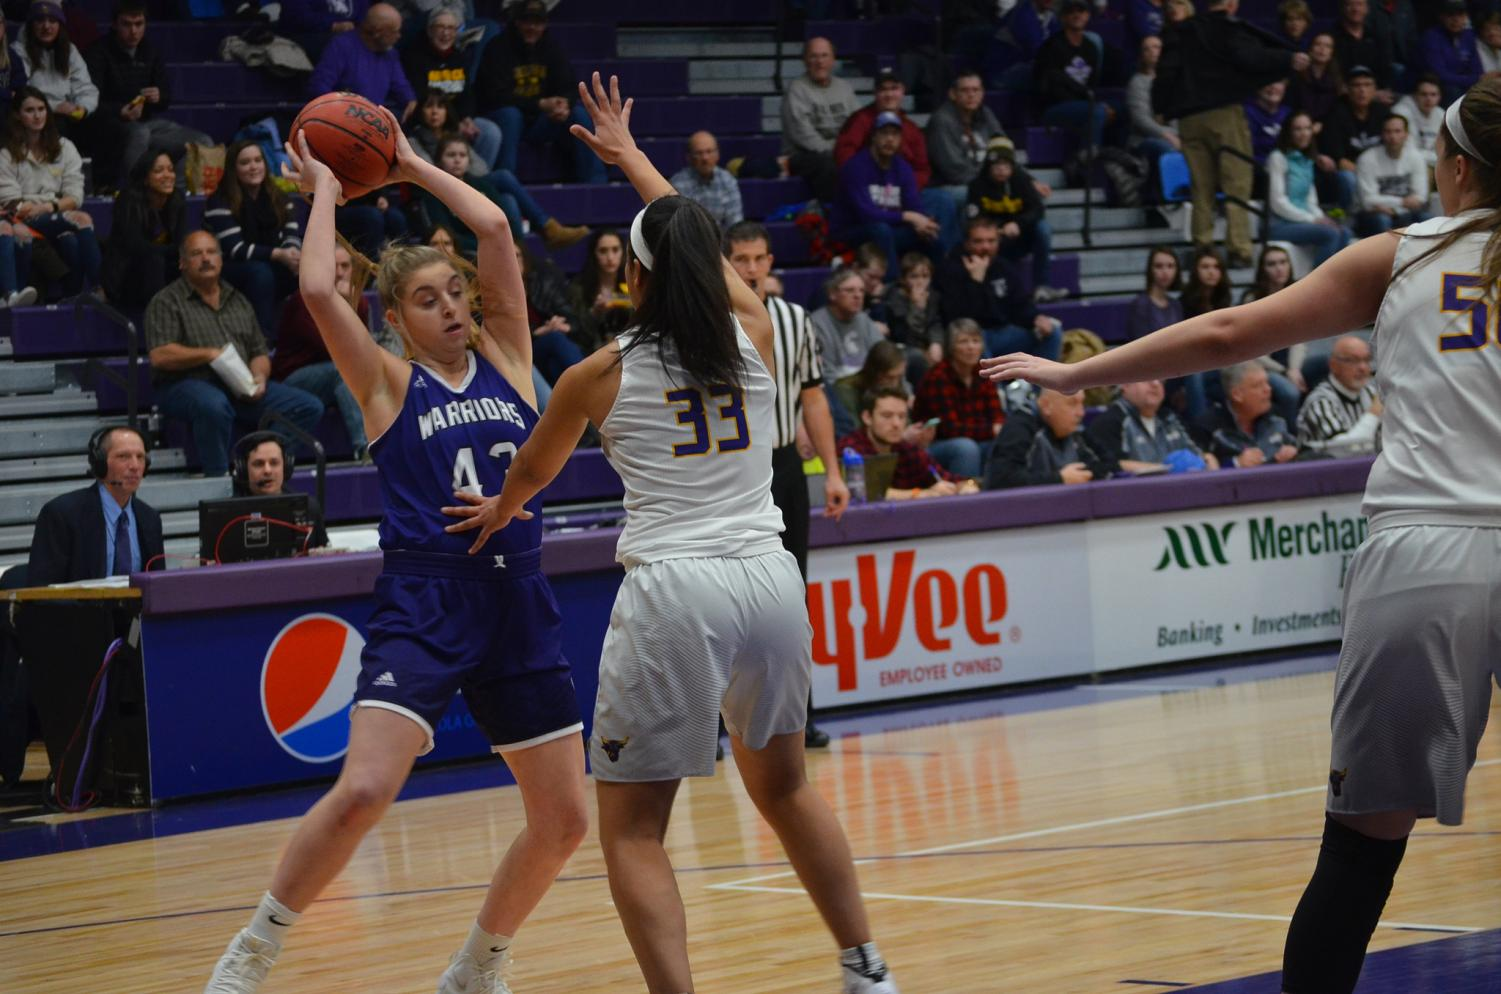 Sophomore Emma Fee attempts to pass to a teammate during a game against Minnesota State University-Mankato on Saturday, Feb. 23 in McCown Gymnasium.